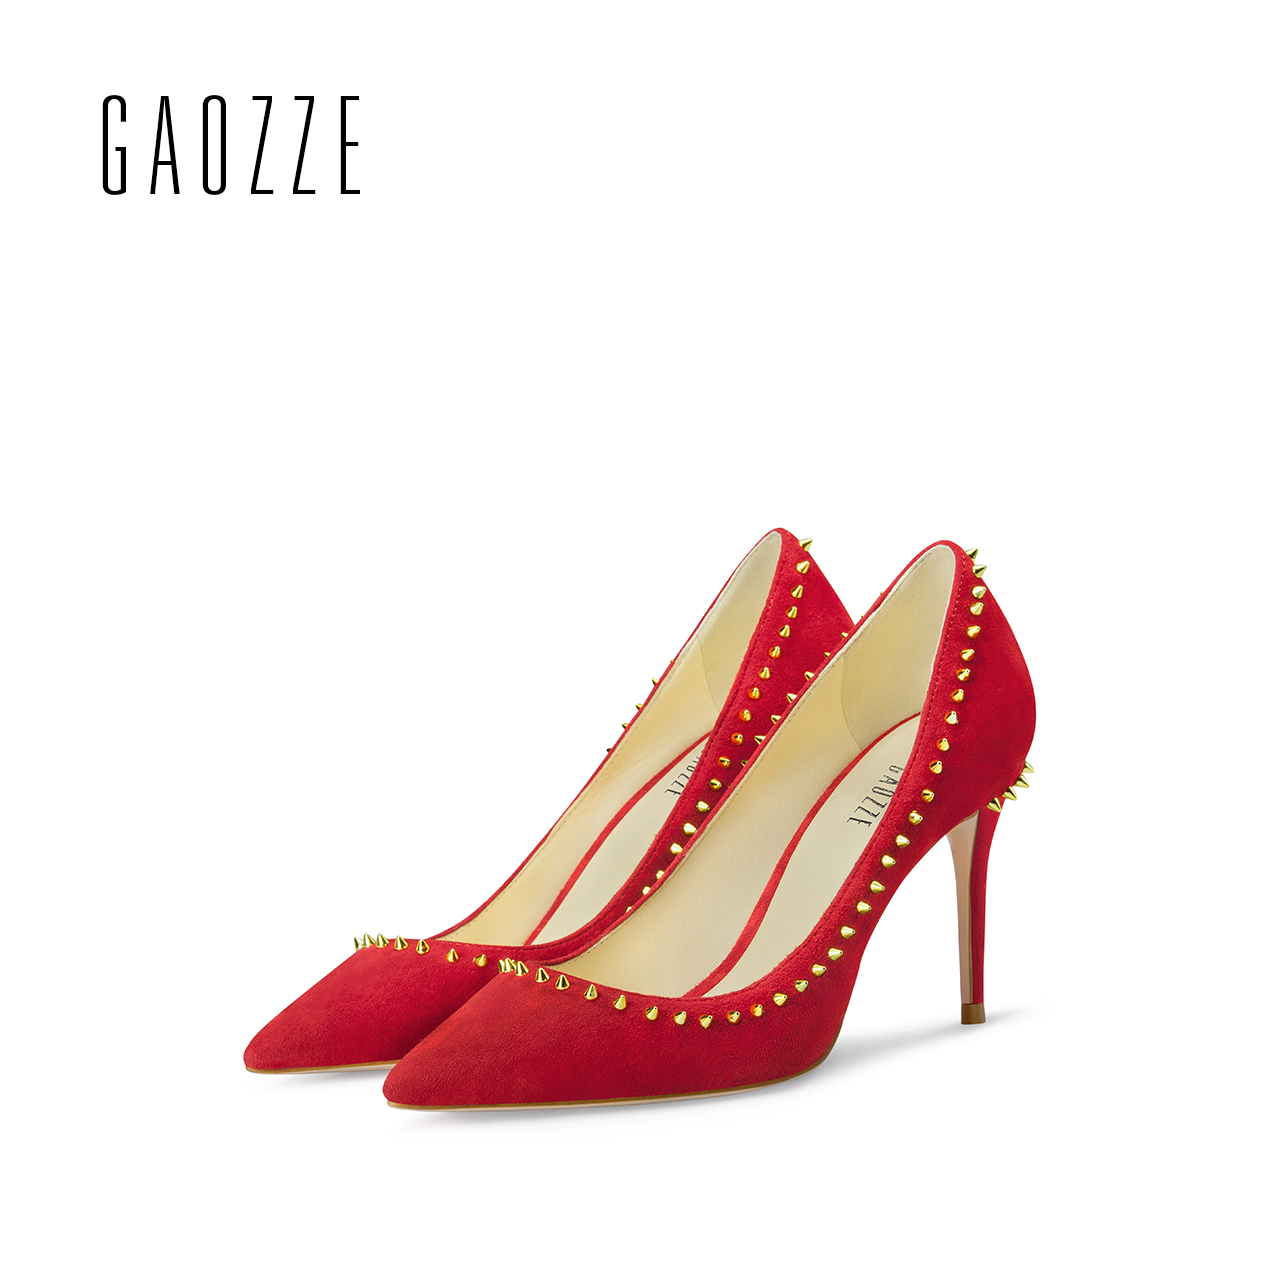 GAOZZE new red high-heeled pump shoes women wedding shoes pointed toe casual shoes rivets pumps shoes 2017 autumn camel 2015 autumn new fashion women pump cashmere calfskin round lace deep mouth high heeled shoes a53040605